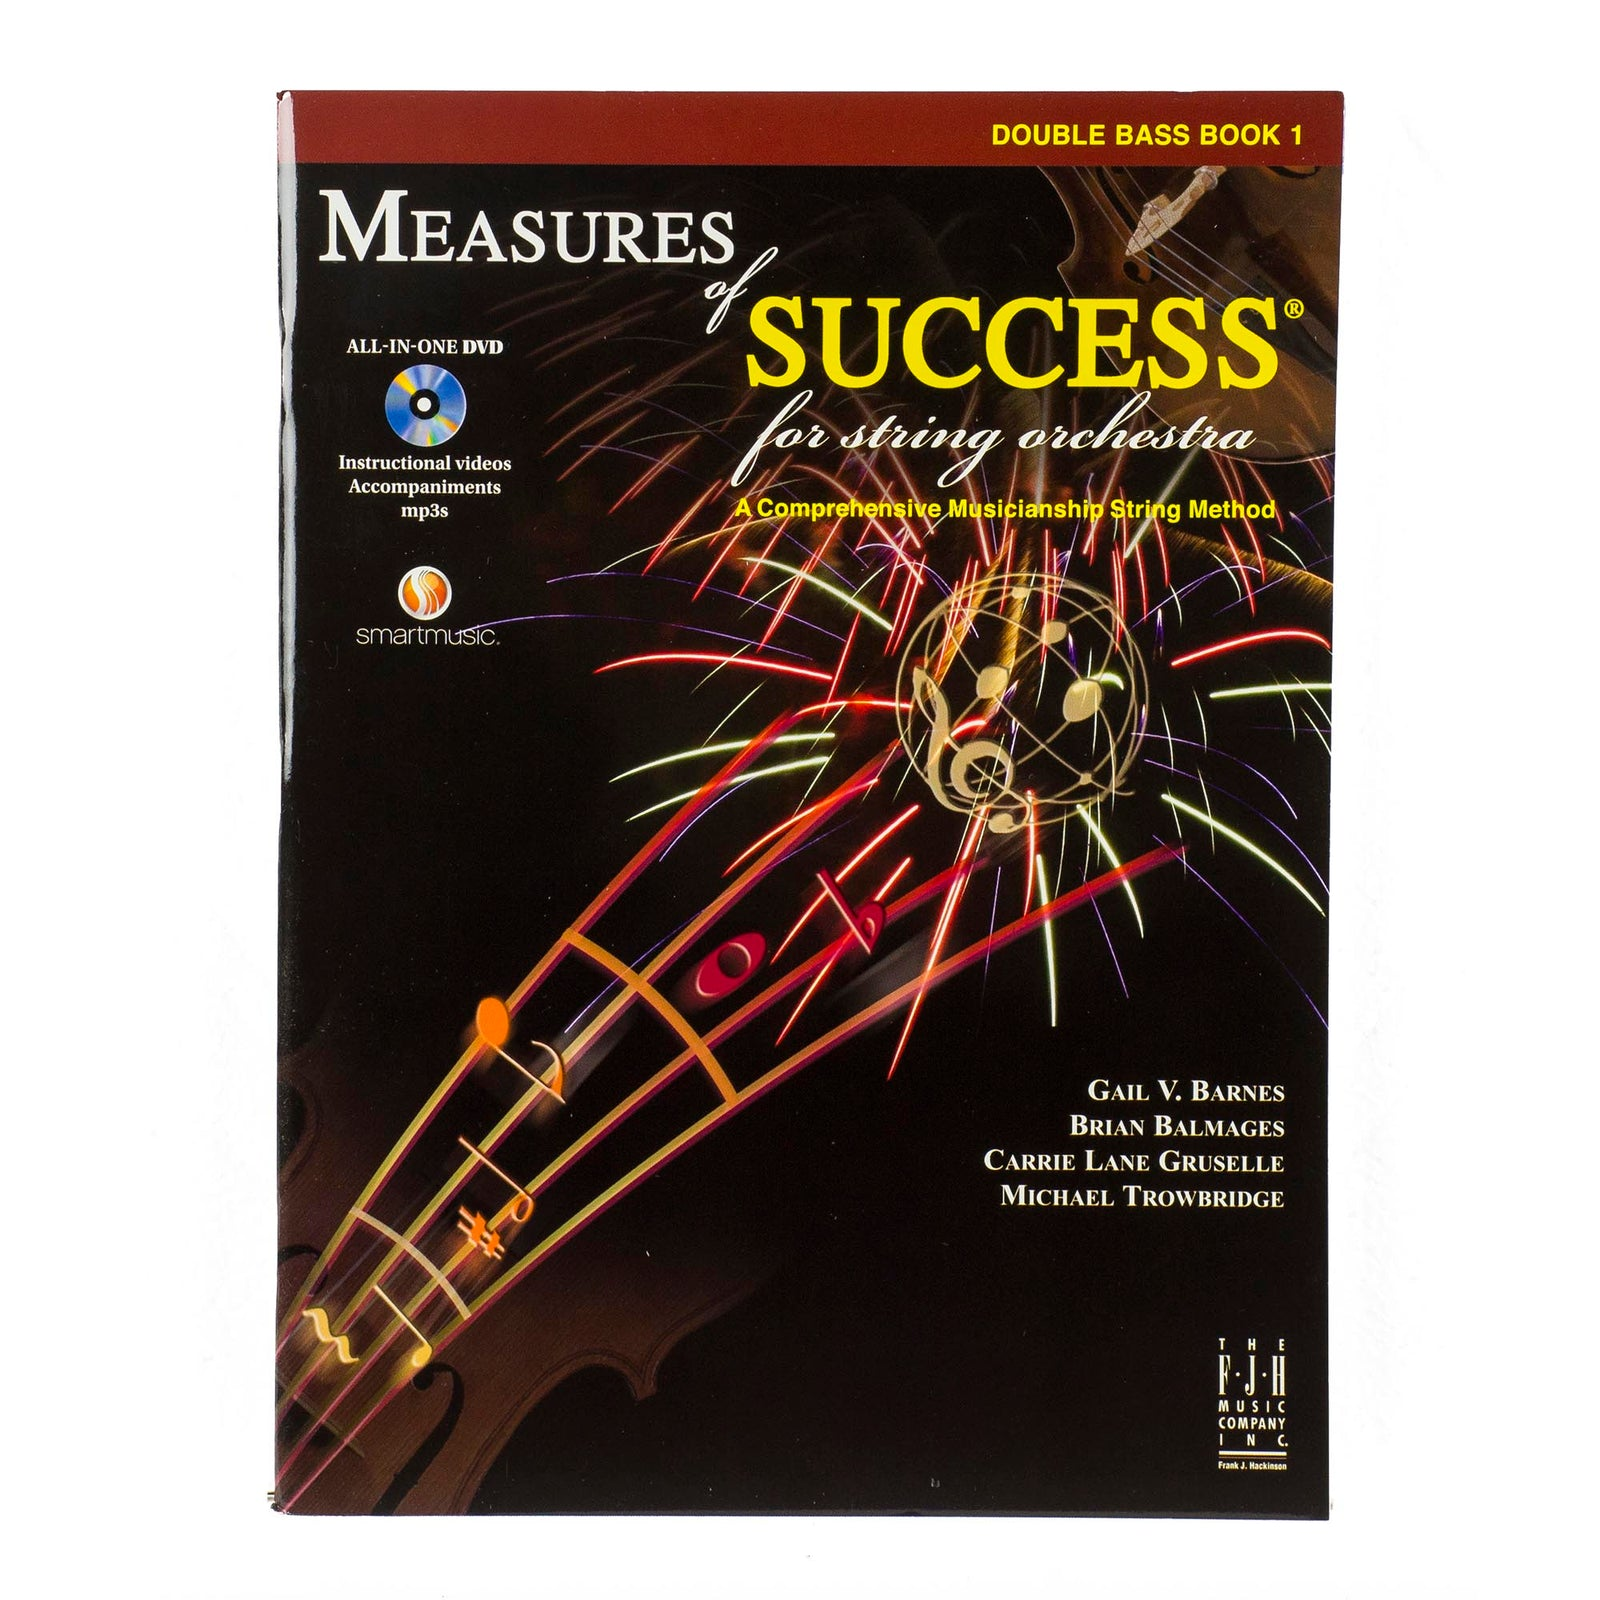 Measures Of Success For String Orchestra - String Bass Book 1